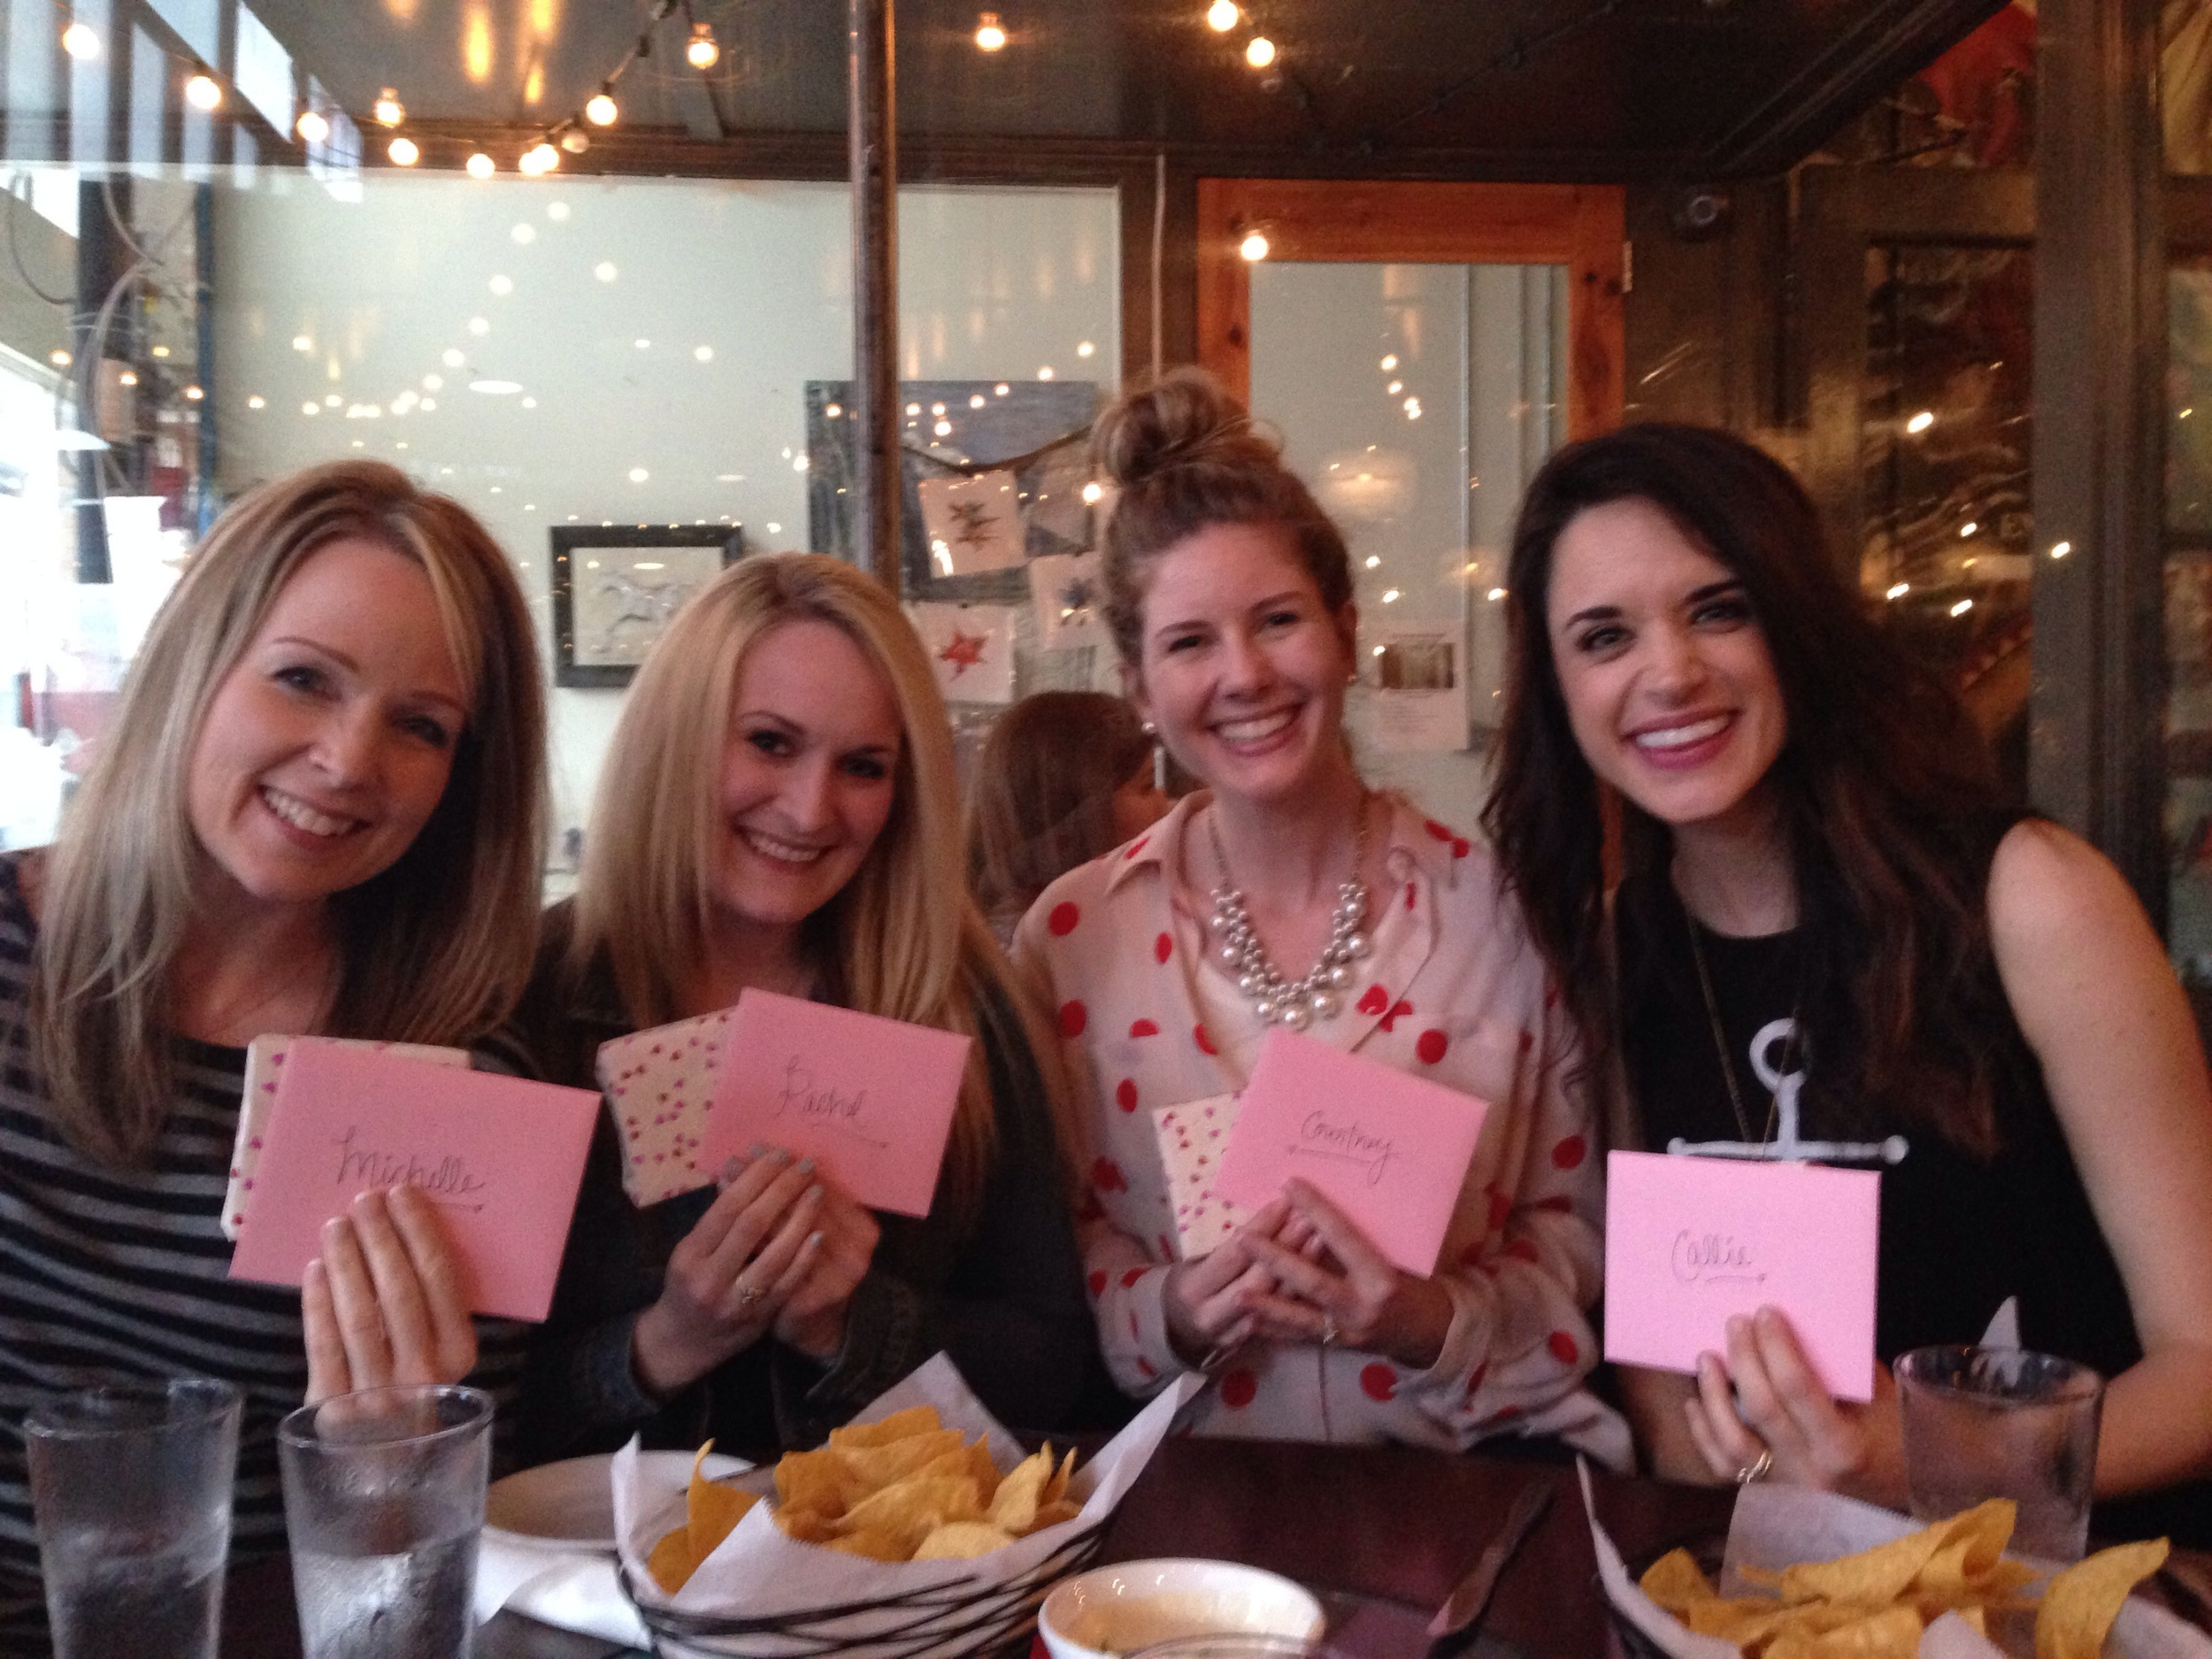 Just past the year anniversary of the launch of The LovingKind, in March, I had a special celebration with these sweet friends who played big roles in helping me bring TLK to life!  From L to R:  Michelle ,  Rachel , Courtney and  Callie